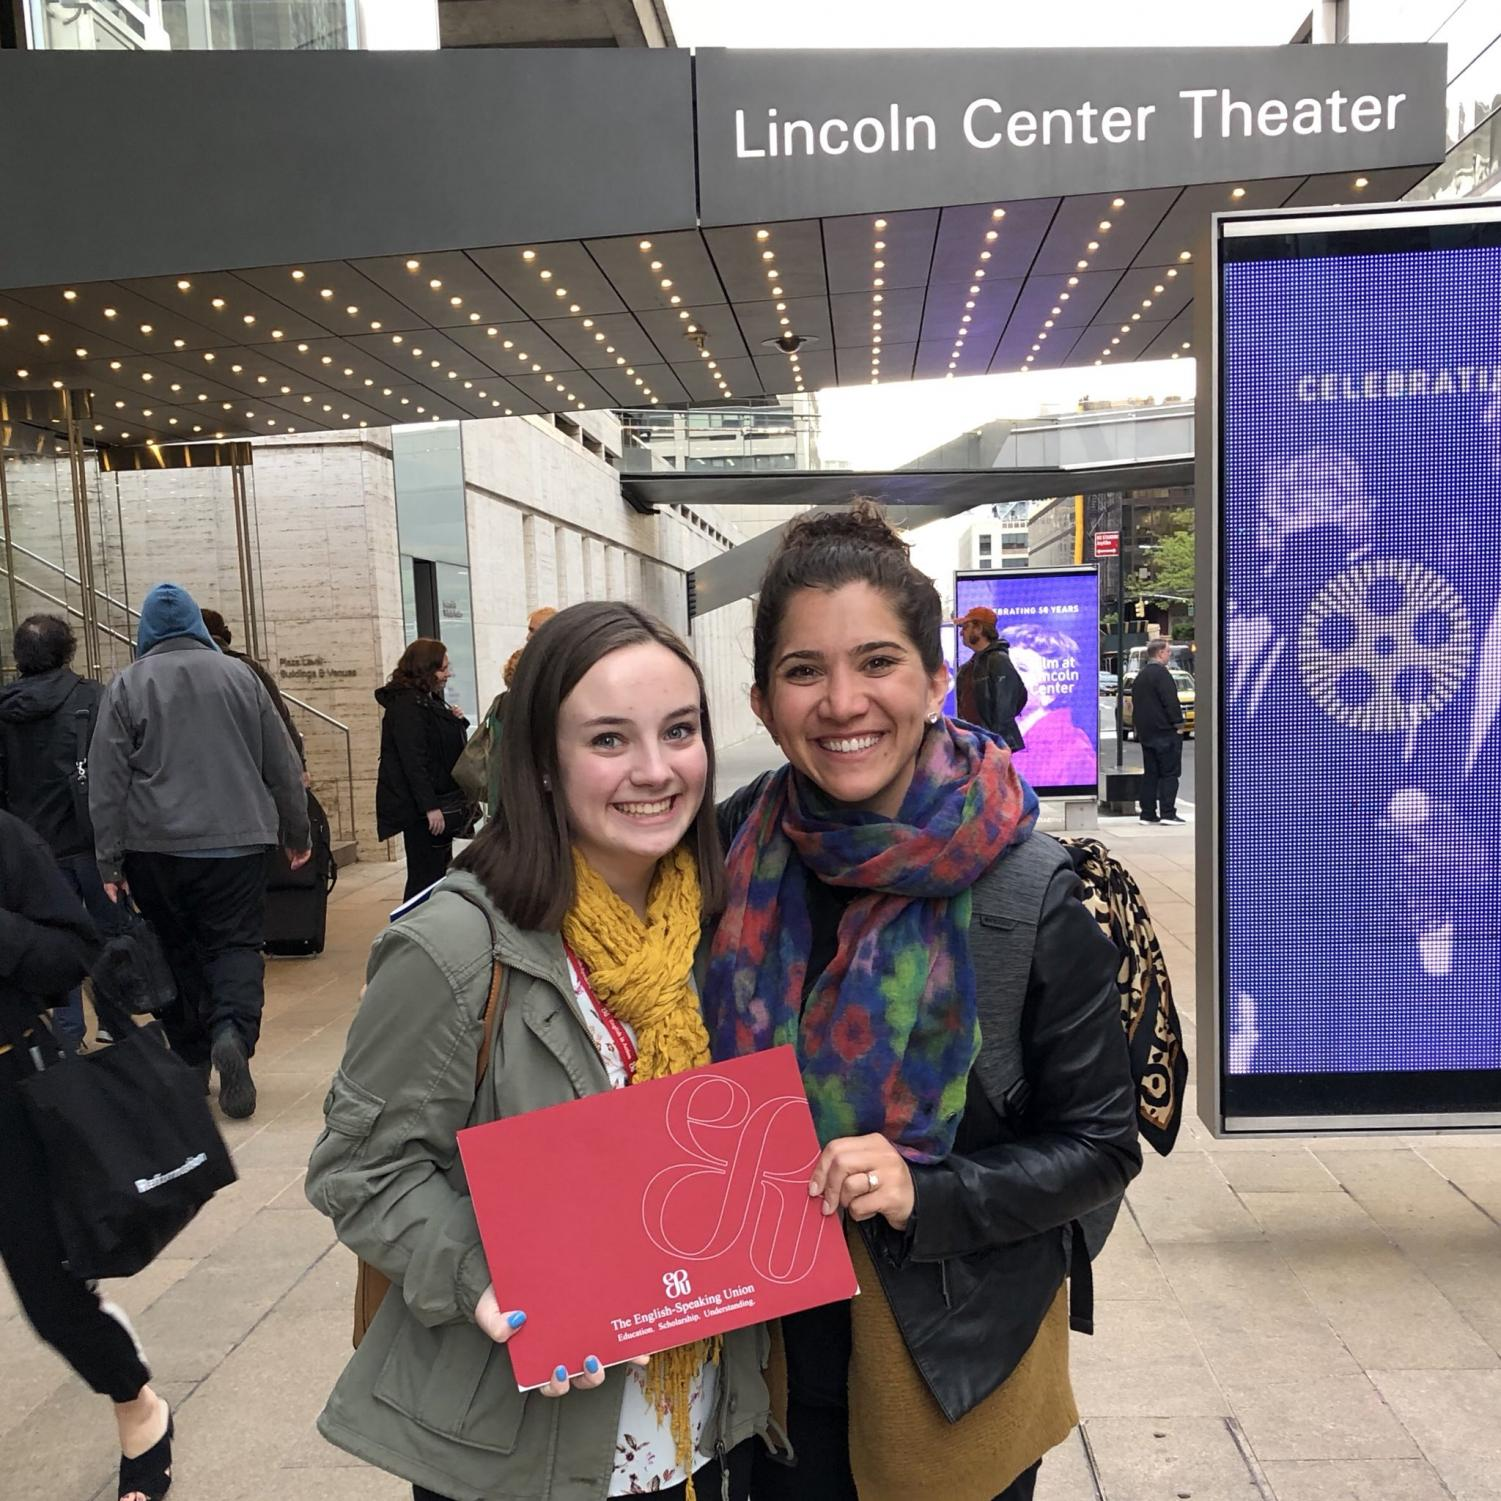 Katrina+Edwards+and+Mrs.+Dickstein-Hughes+at+the+Shakespeare+Competition+in+New+York+City+in+2019.+Edwards+will+return+to+New+York+for+the+national+competition+in+April.+